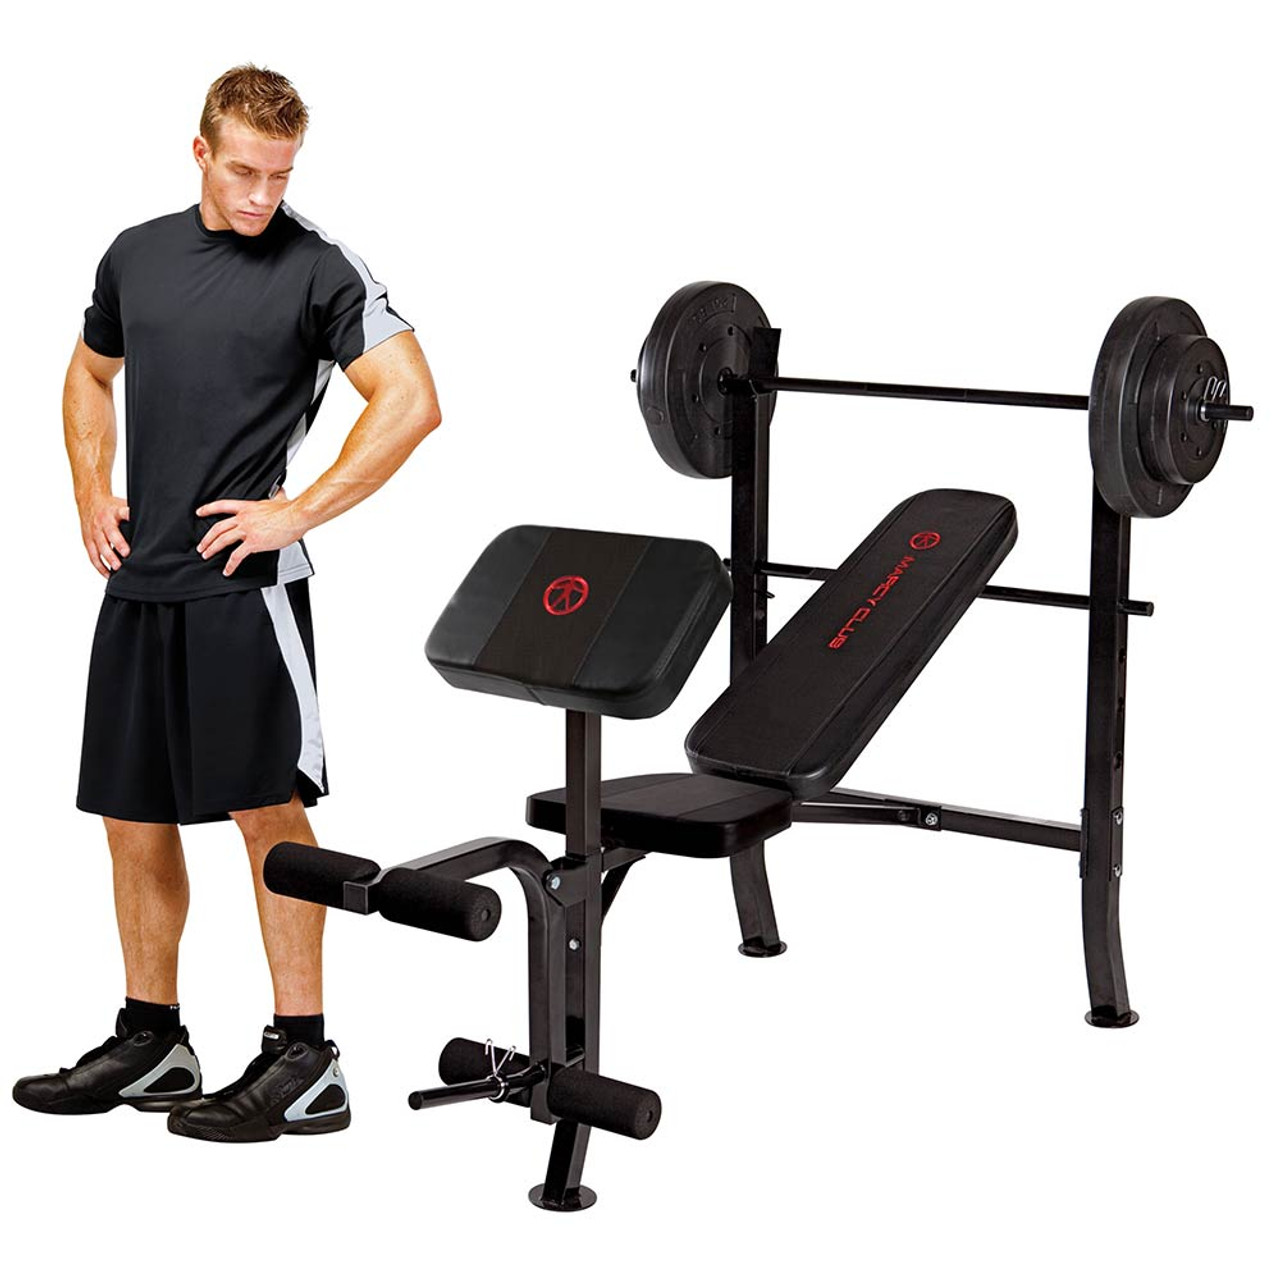 The Folding Standard Weight Bench Marcy MKB-2081 includes a preacher curl pad and leg developer for a full body workout